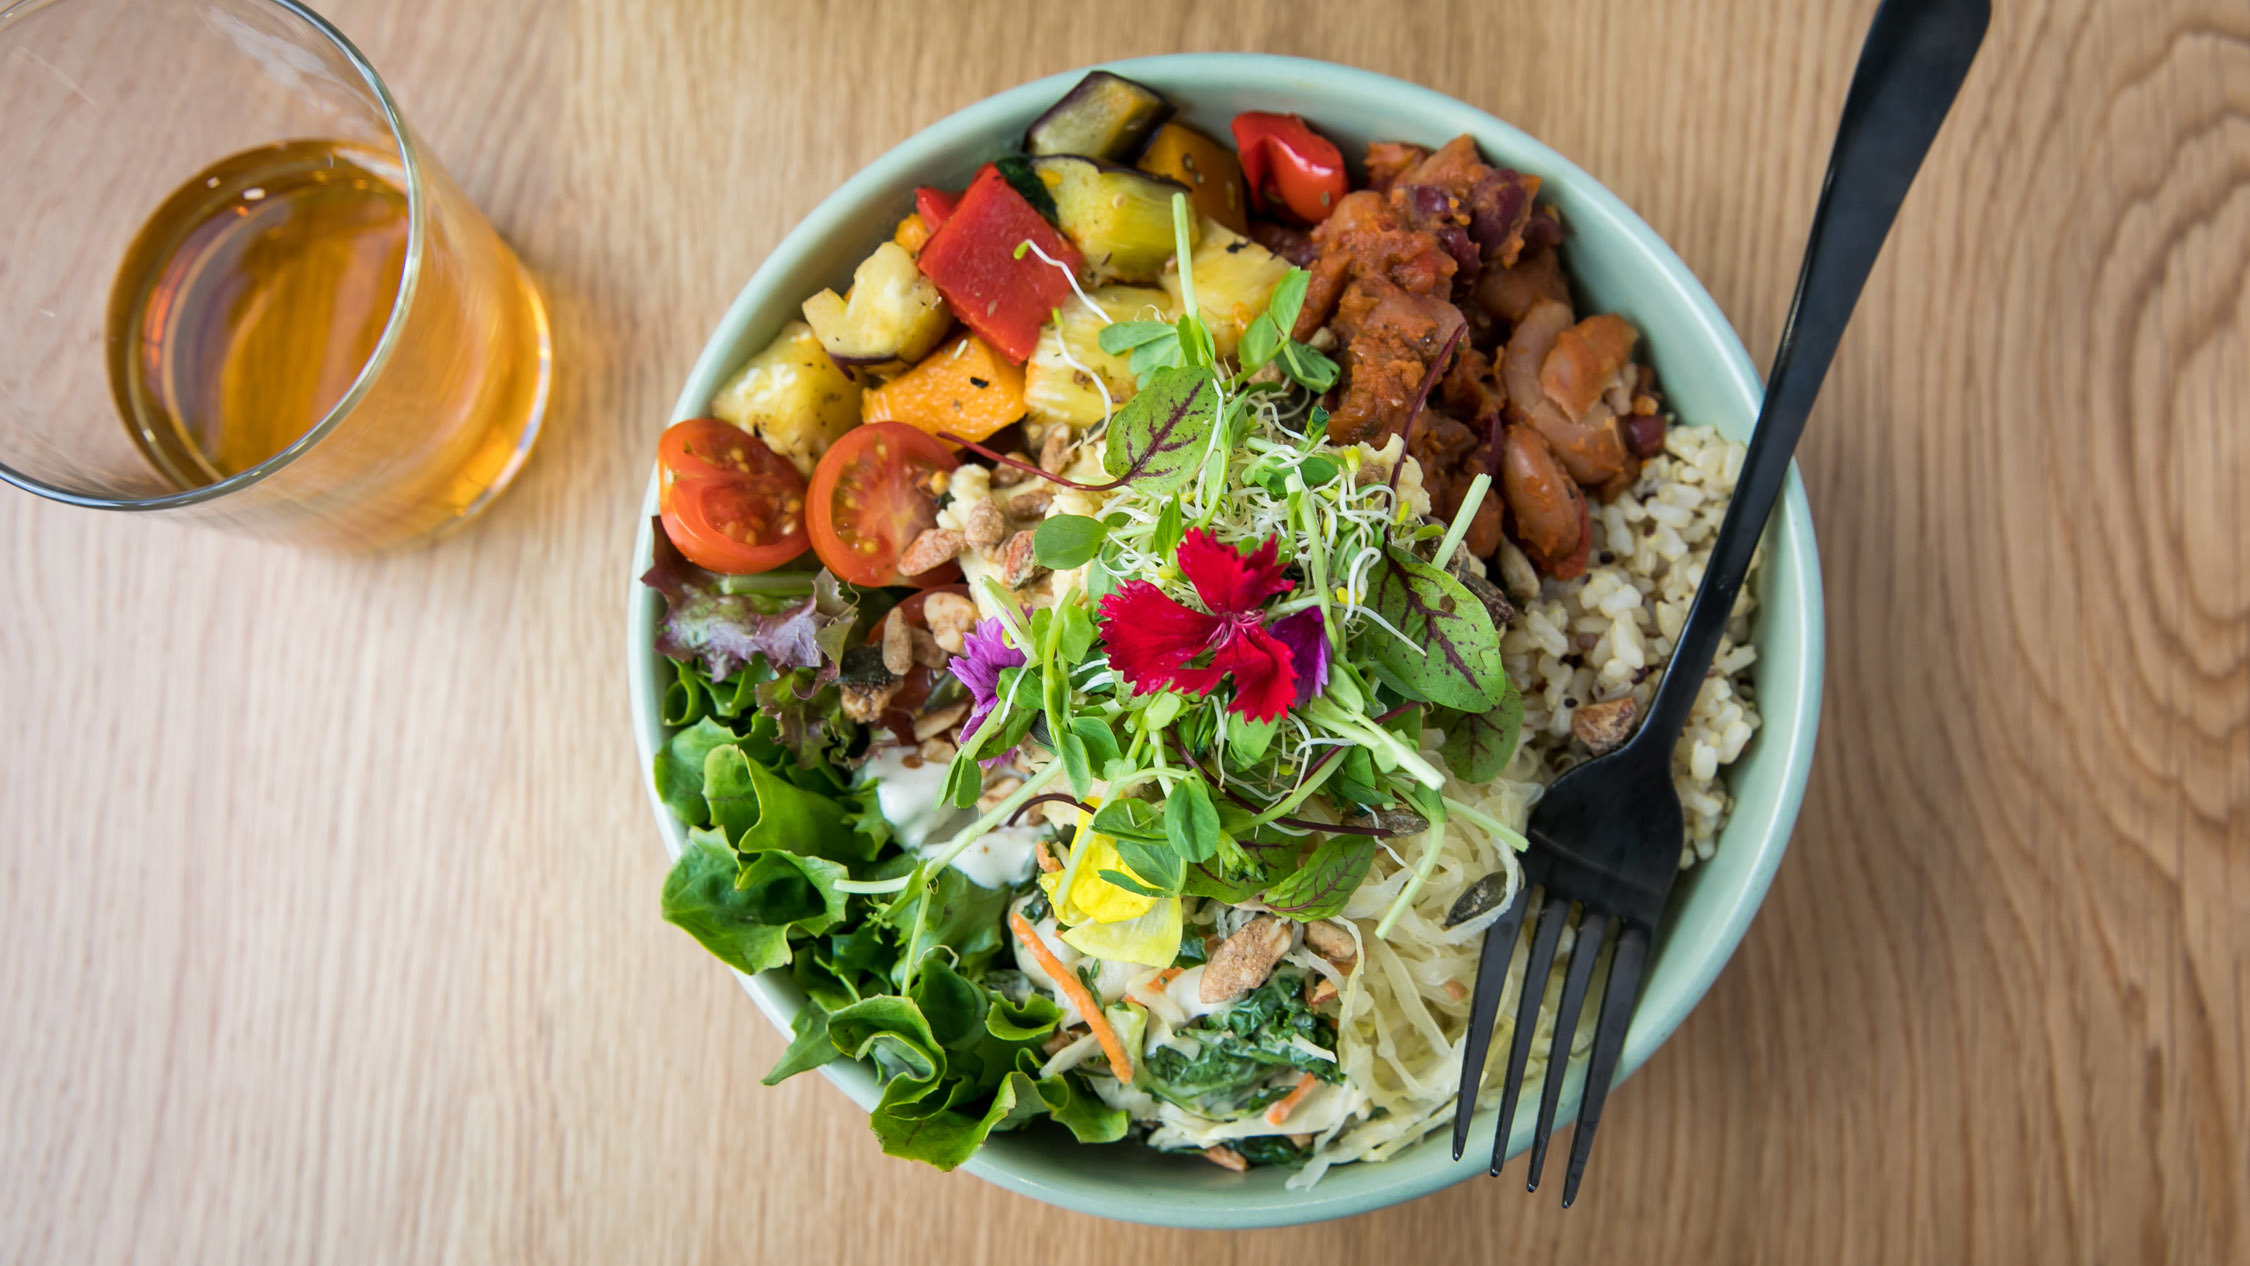 Shift Eatery Surry Hills salad bowl